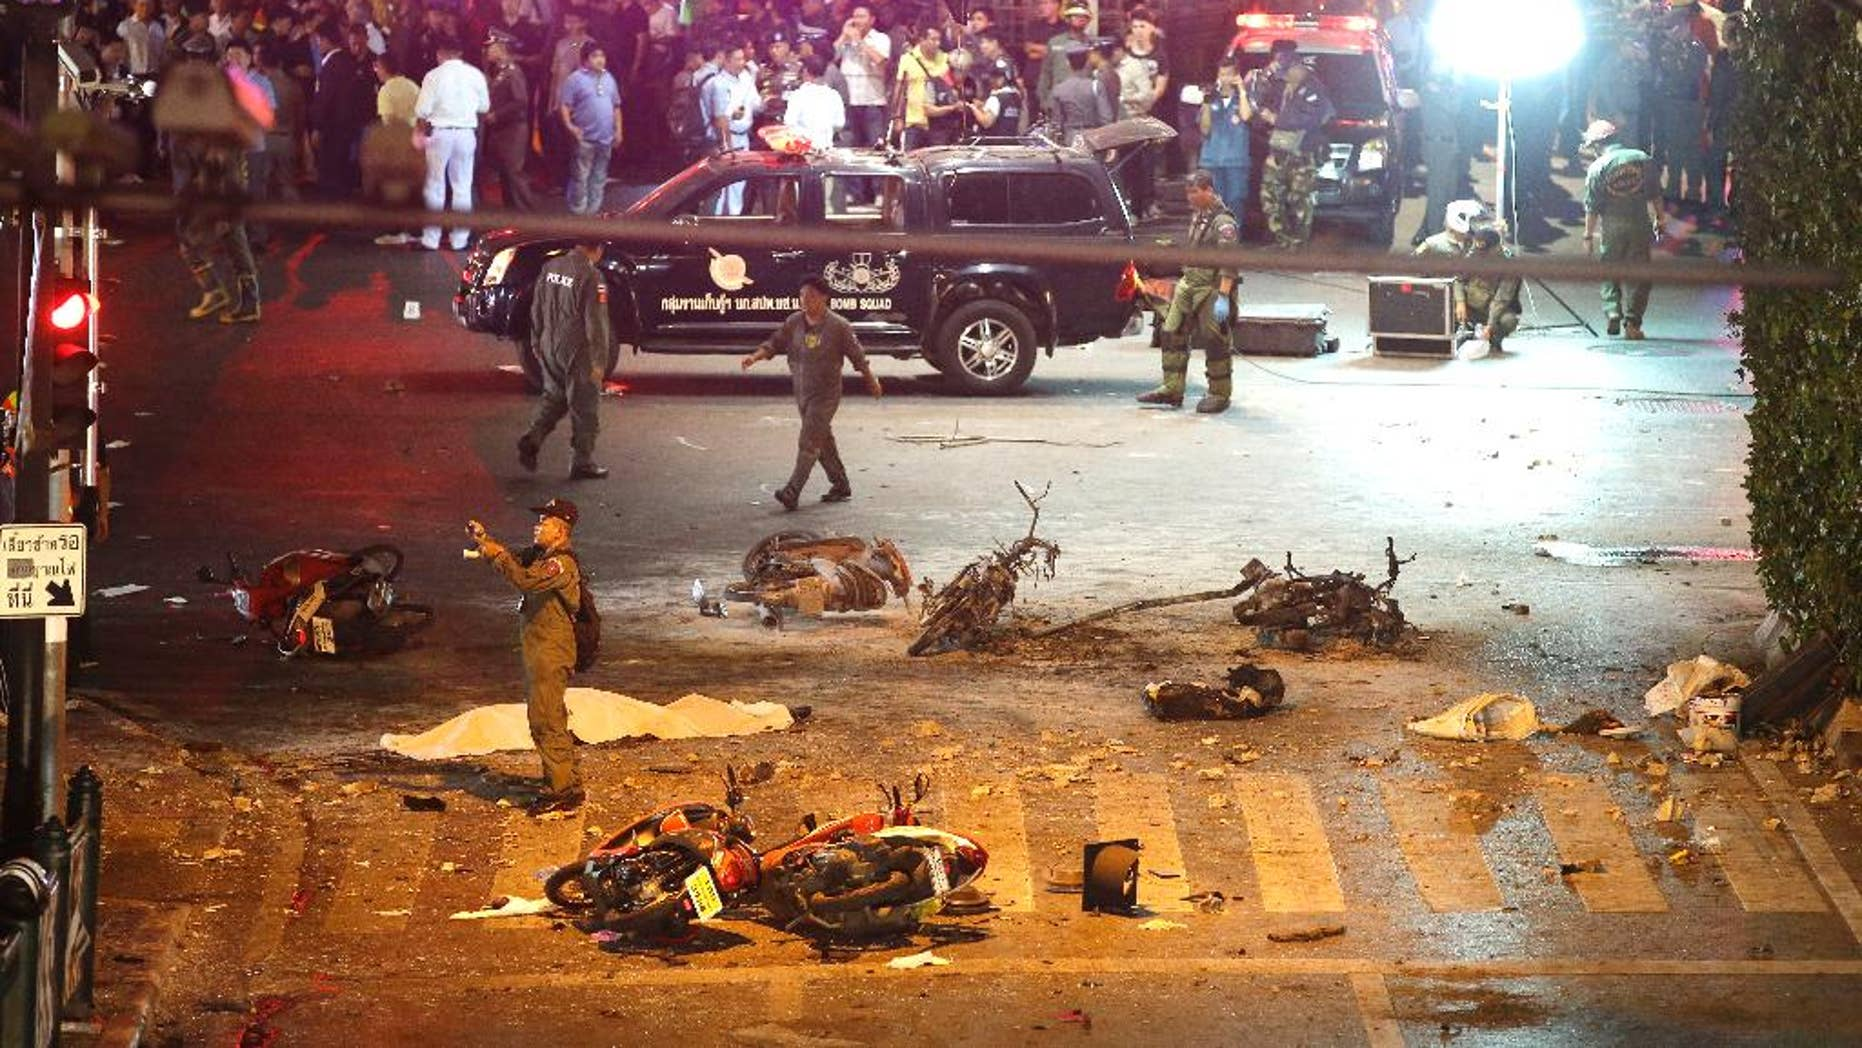 FILE - In this Aug. 17, 2015 file photo, a policeman photographs debris from an explosion in central Bangkok, Thailand. A Pakistani and two Malaysians have been detained in connection with last month's bombing of a shrine in Bangkok that killed 20 people, the national police chief said Monday, Sept. 14, 2015. (AP Photo/Mark Baker, File)